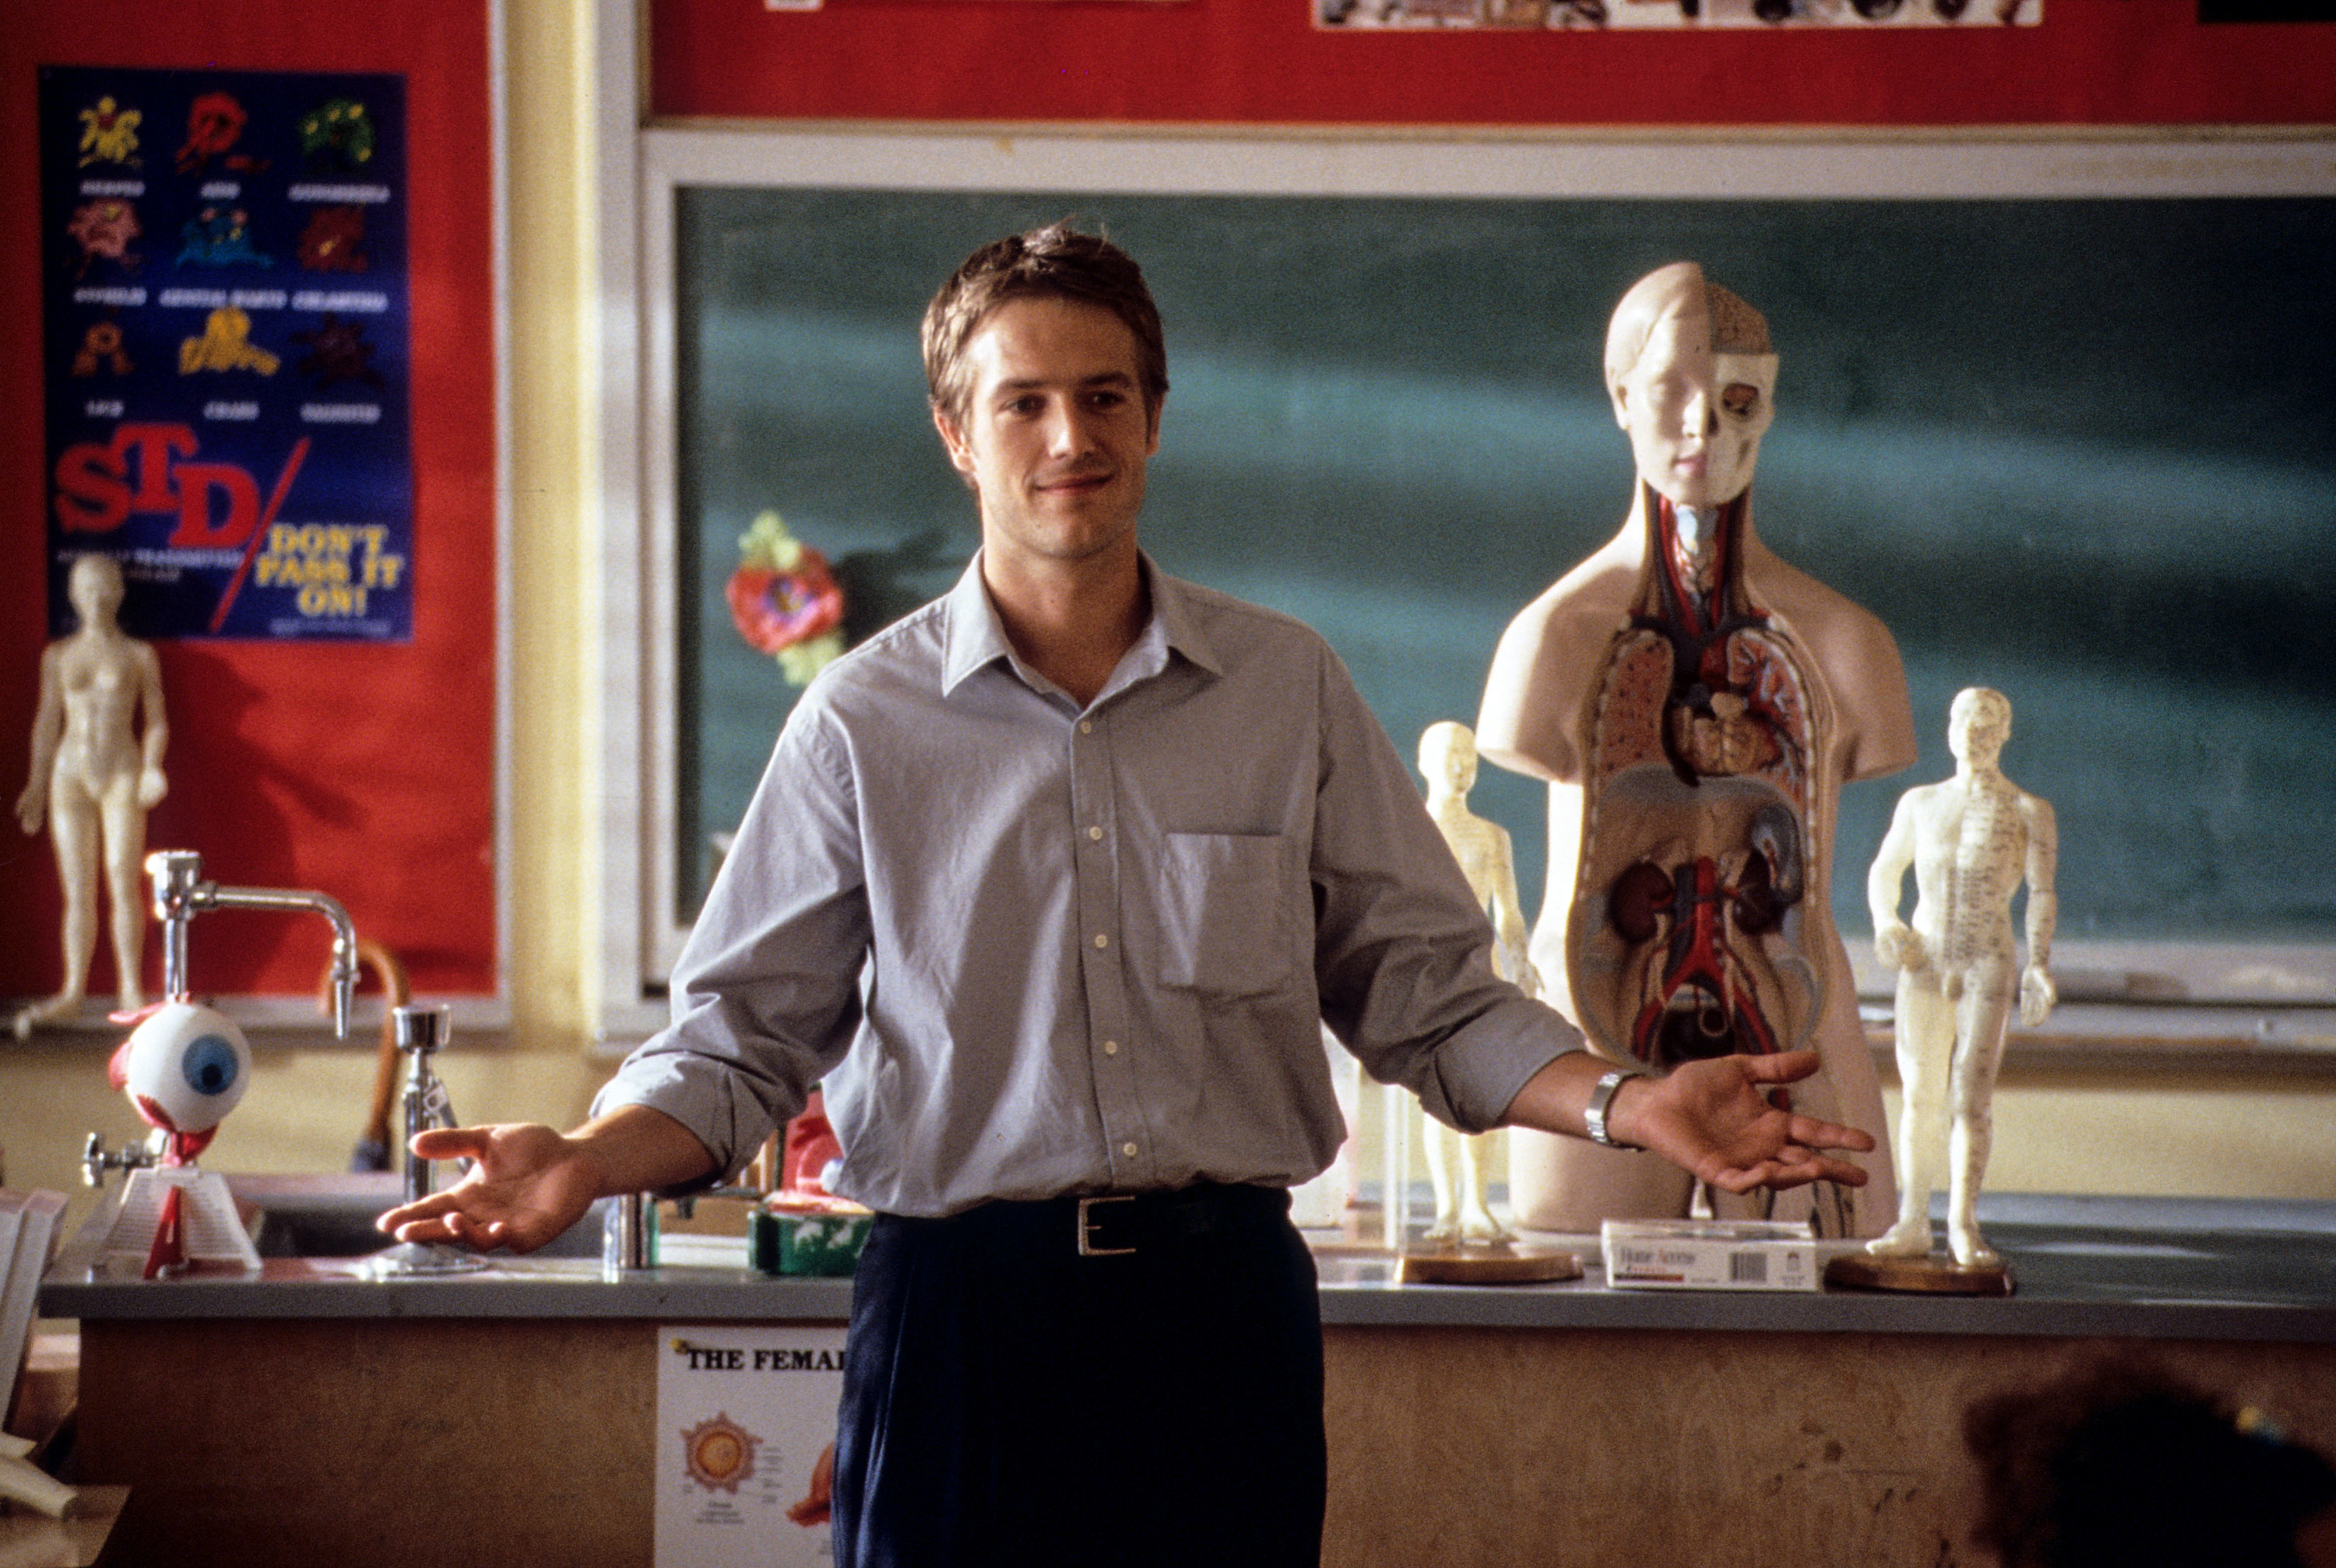 Michael's character stands in front of a classroom while teaching